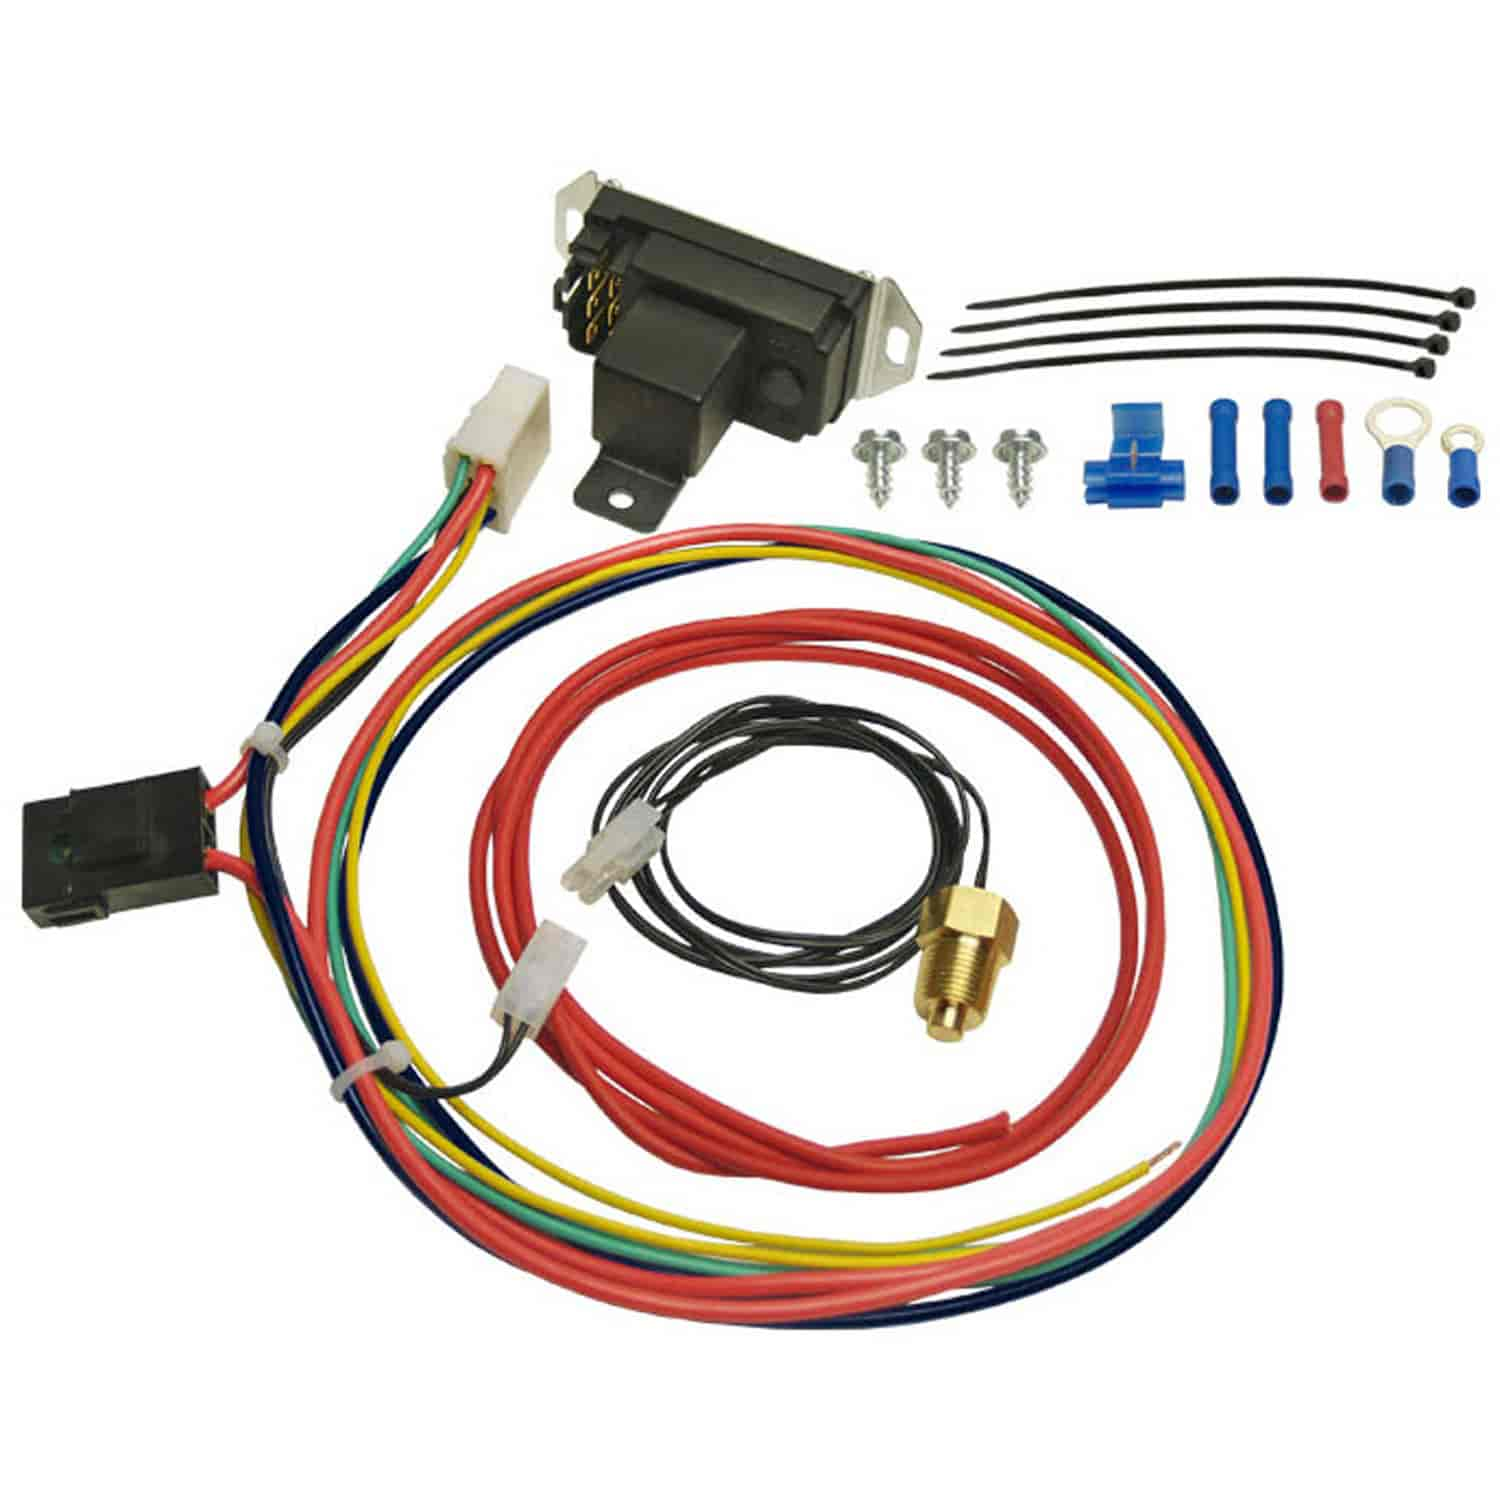 259 16749_1 jegs hot rod wiring harness wiring diagrams VW Wiring Harness Kits at metegol.co